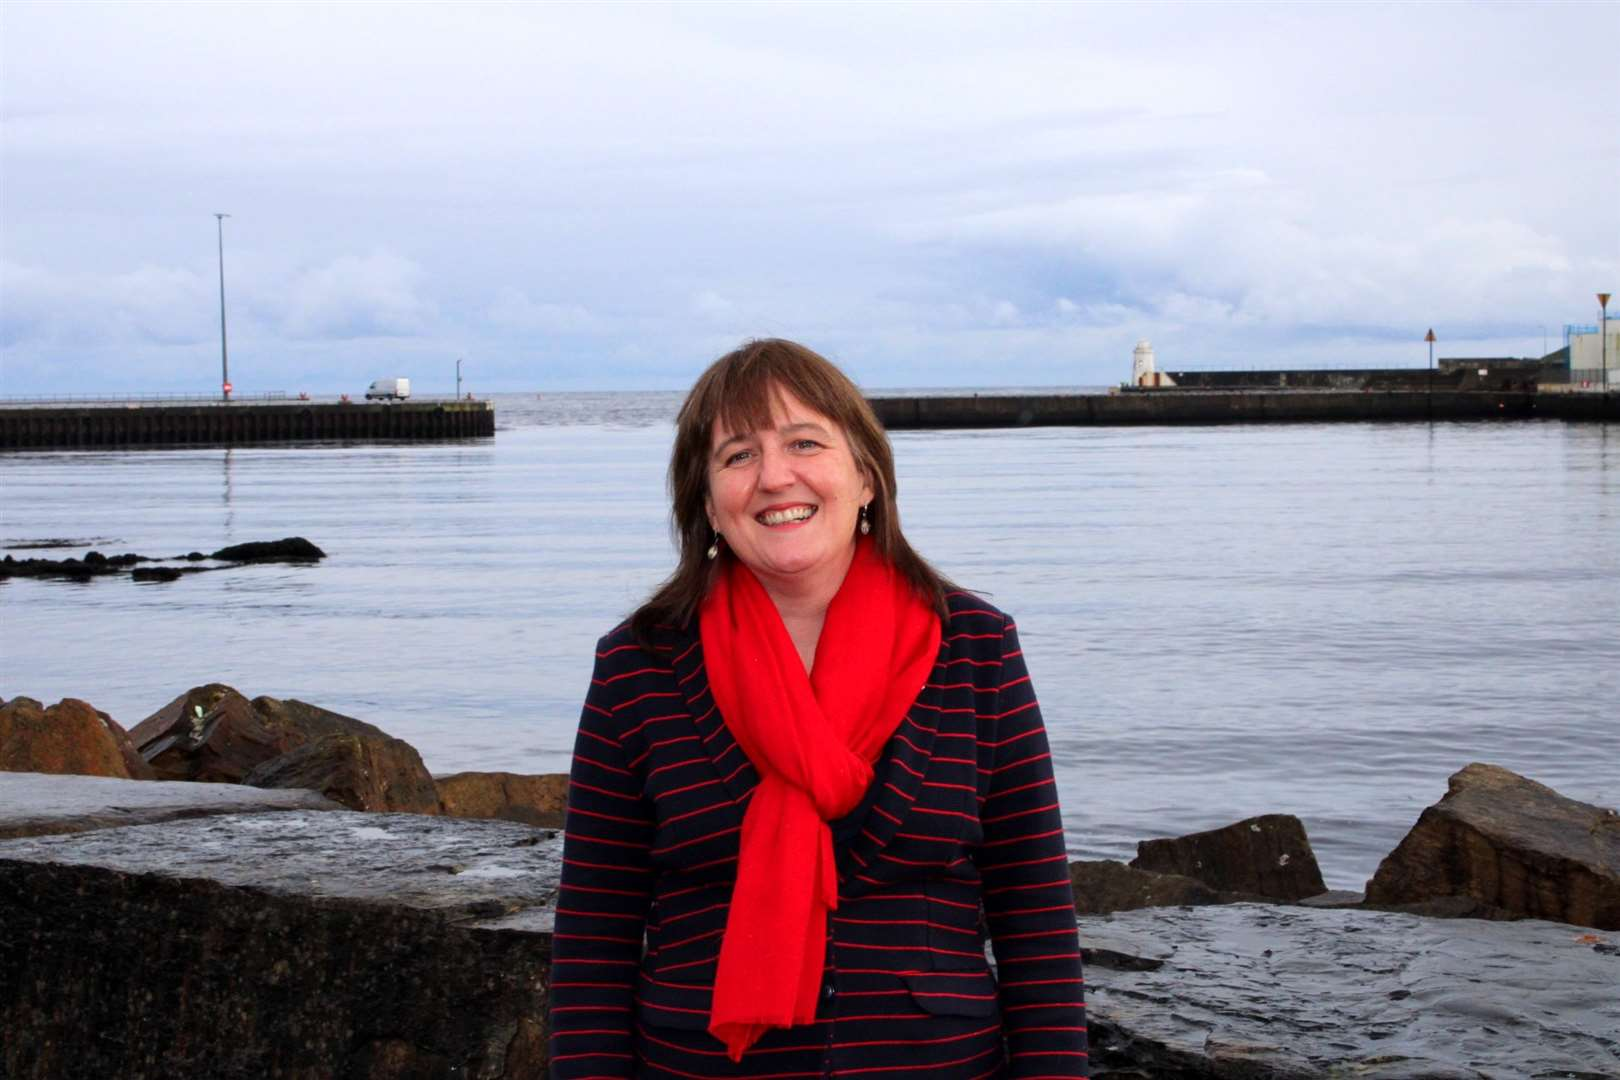 Maree Todd, SNP Candidate